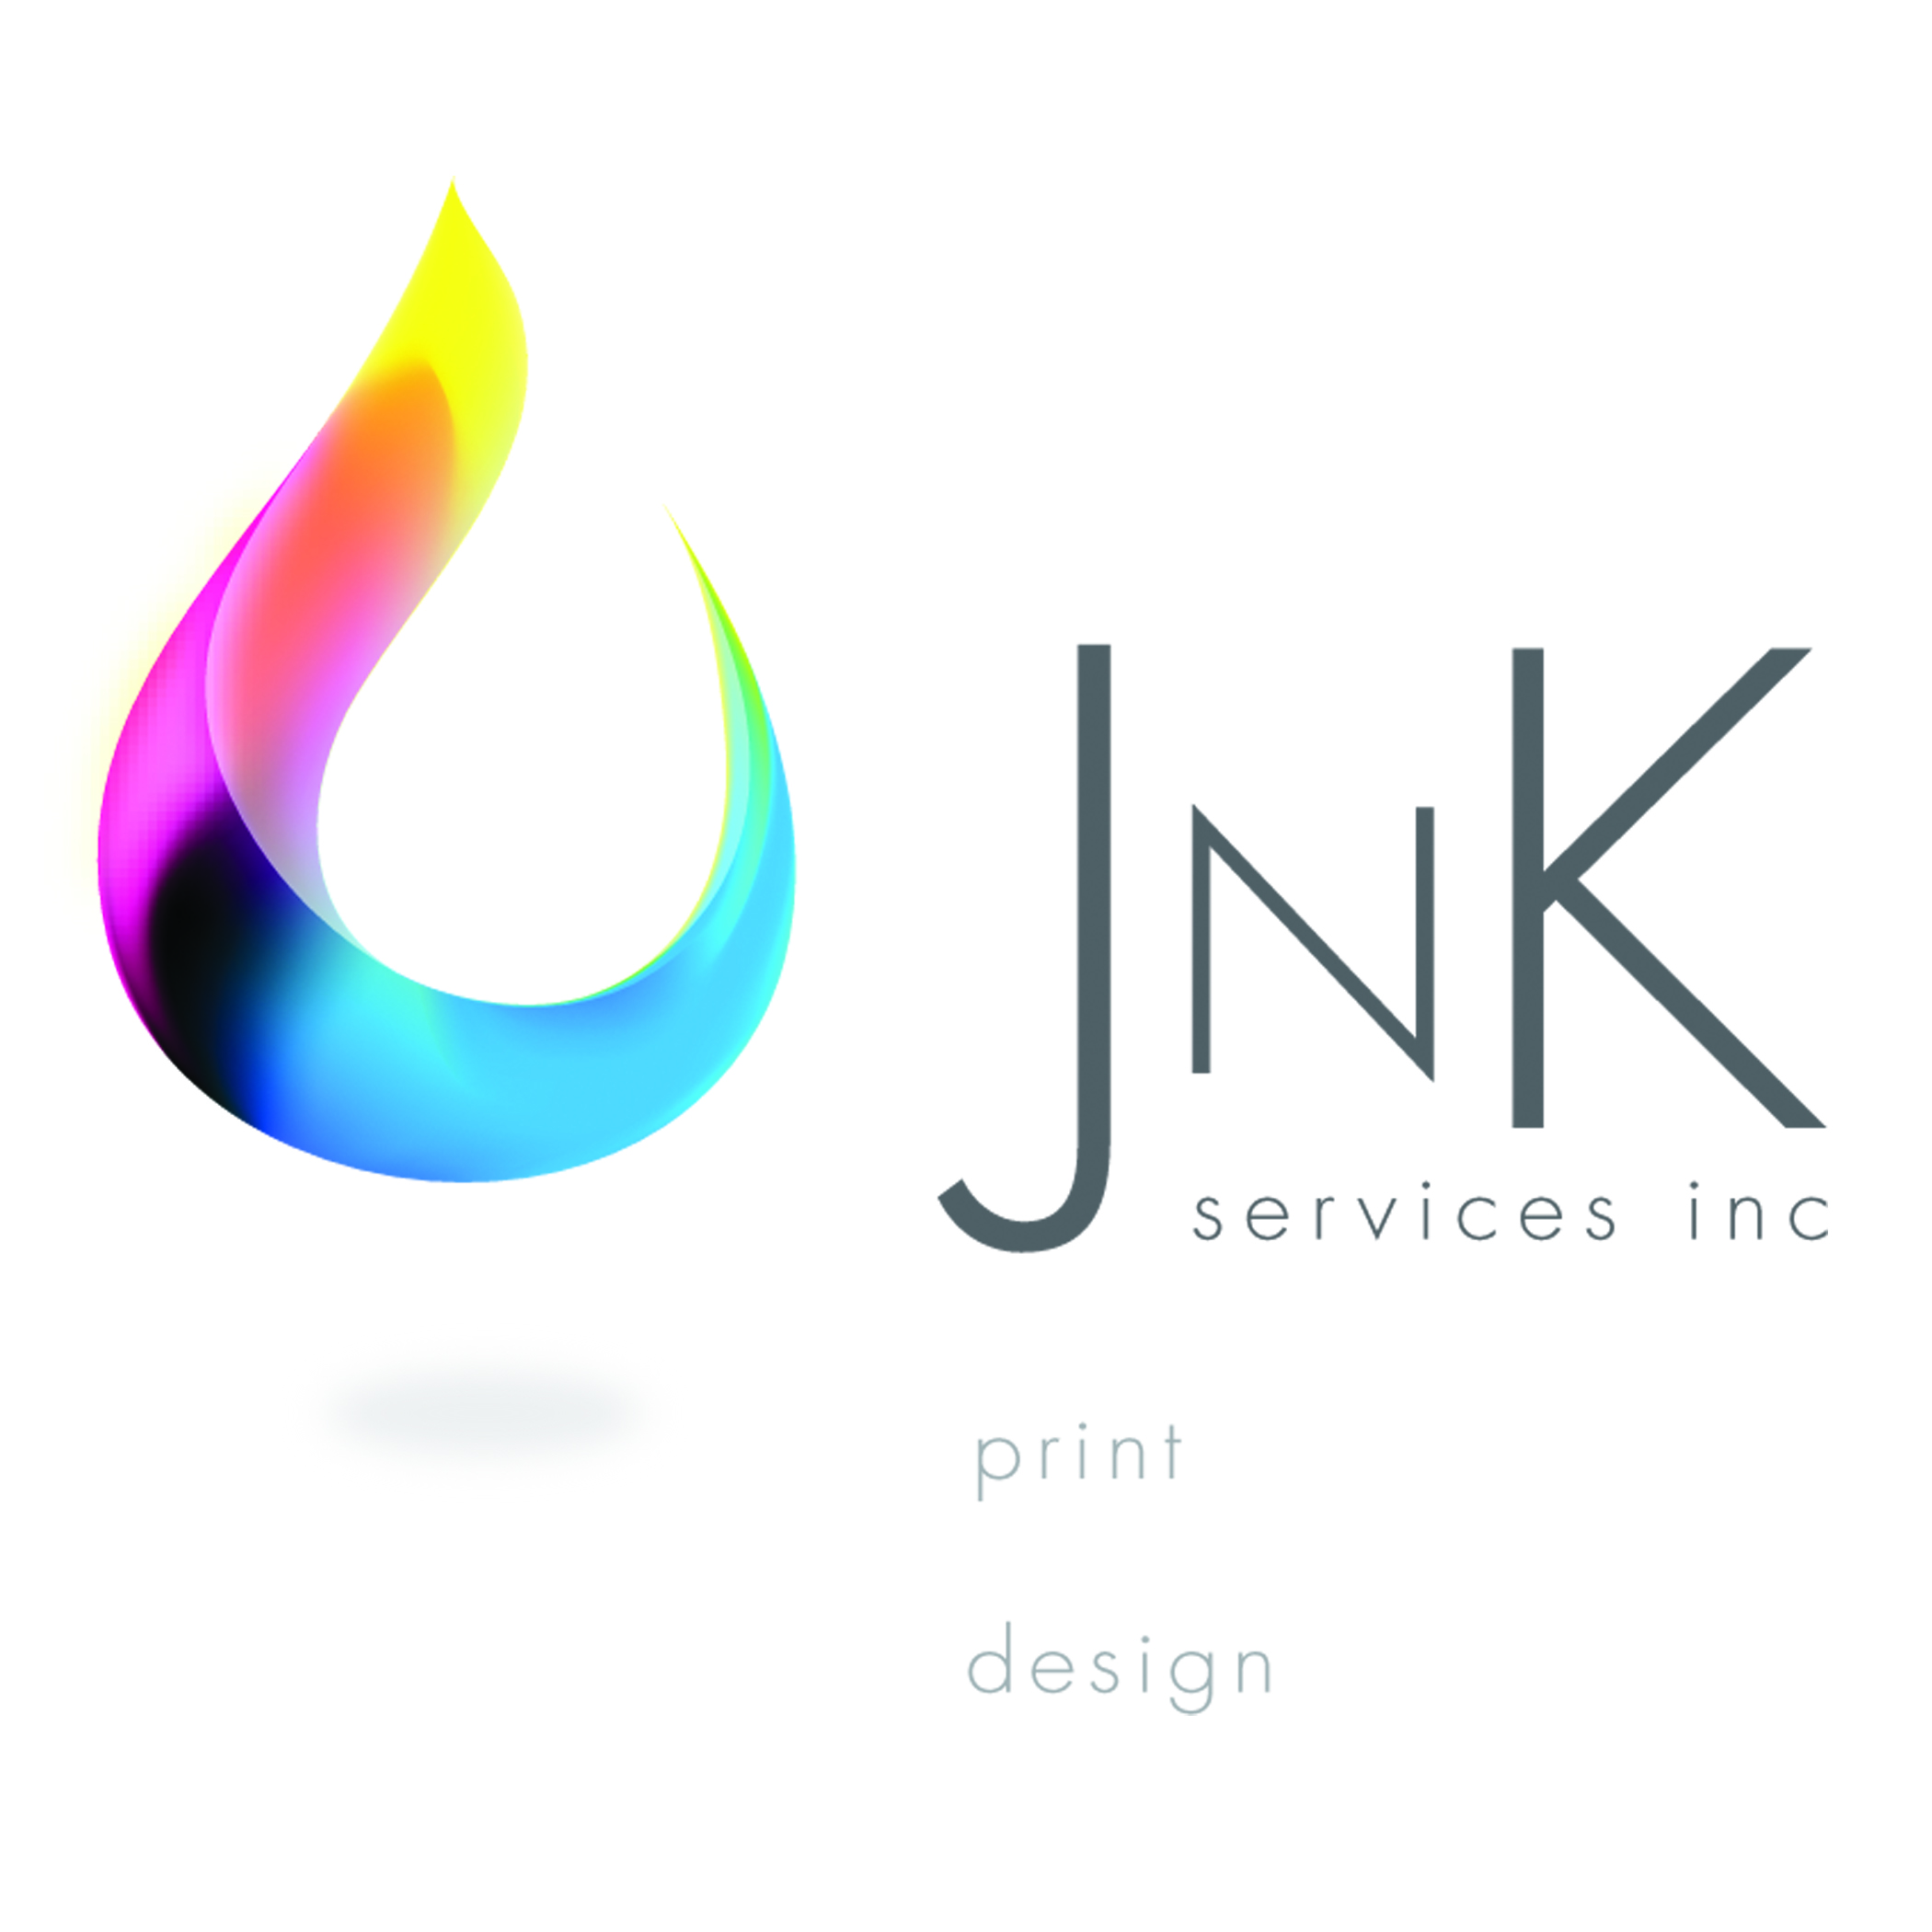 Branding and rebranding jnk services Branding and logo design companies